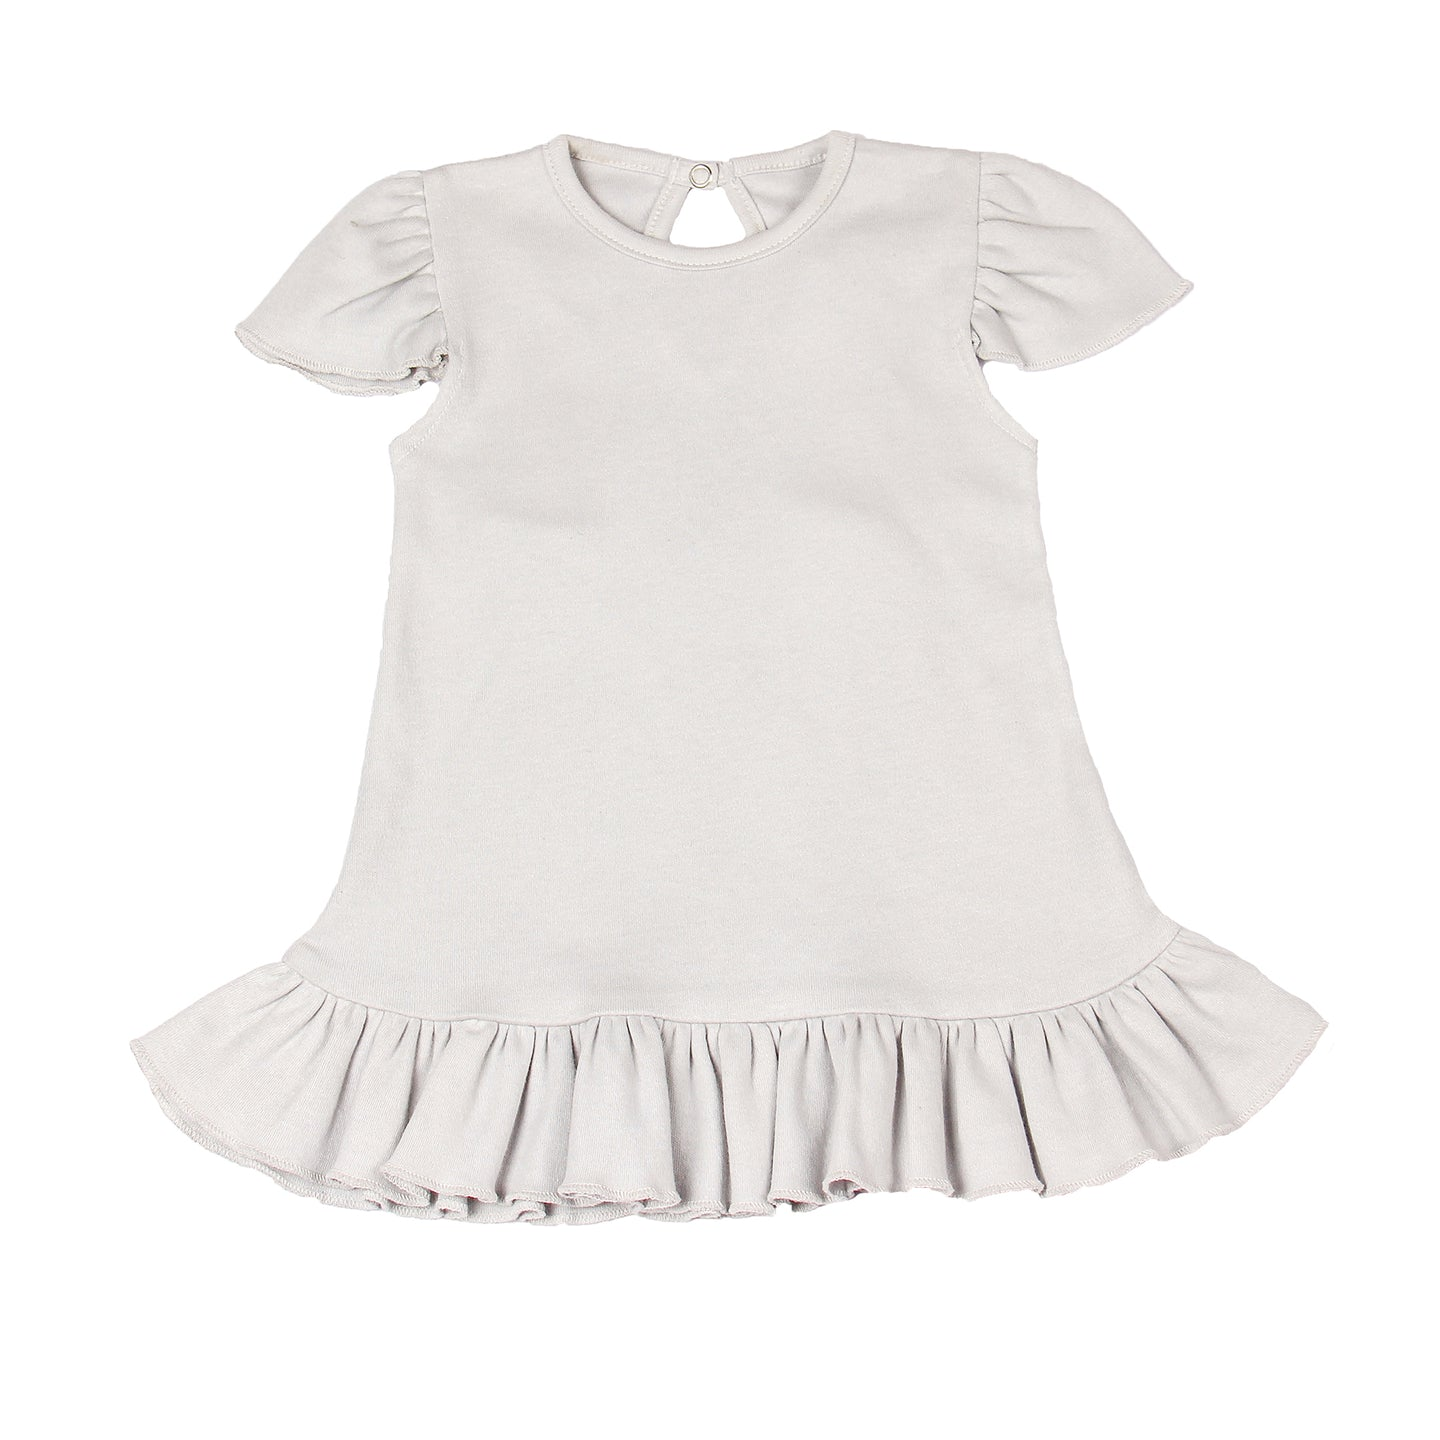 FH-5019 - Baby Girl Dress - Bottom Frill Solid Grey